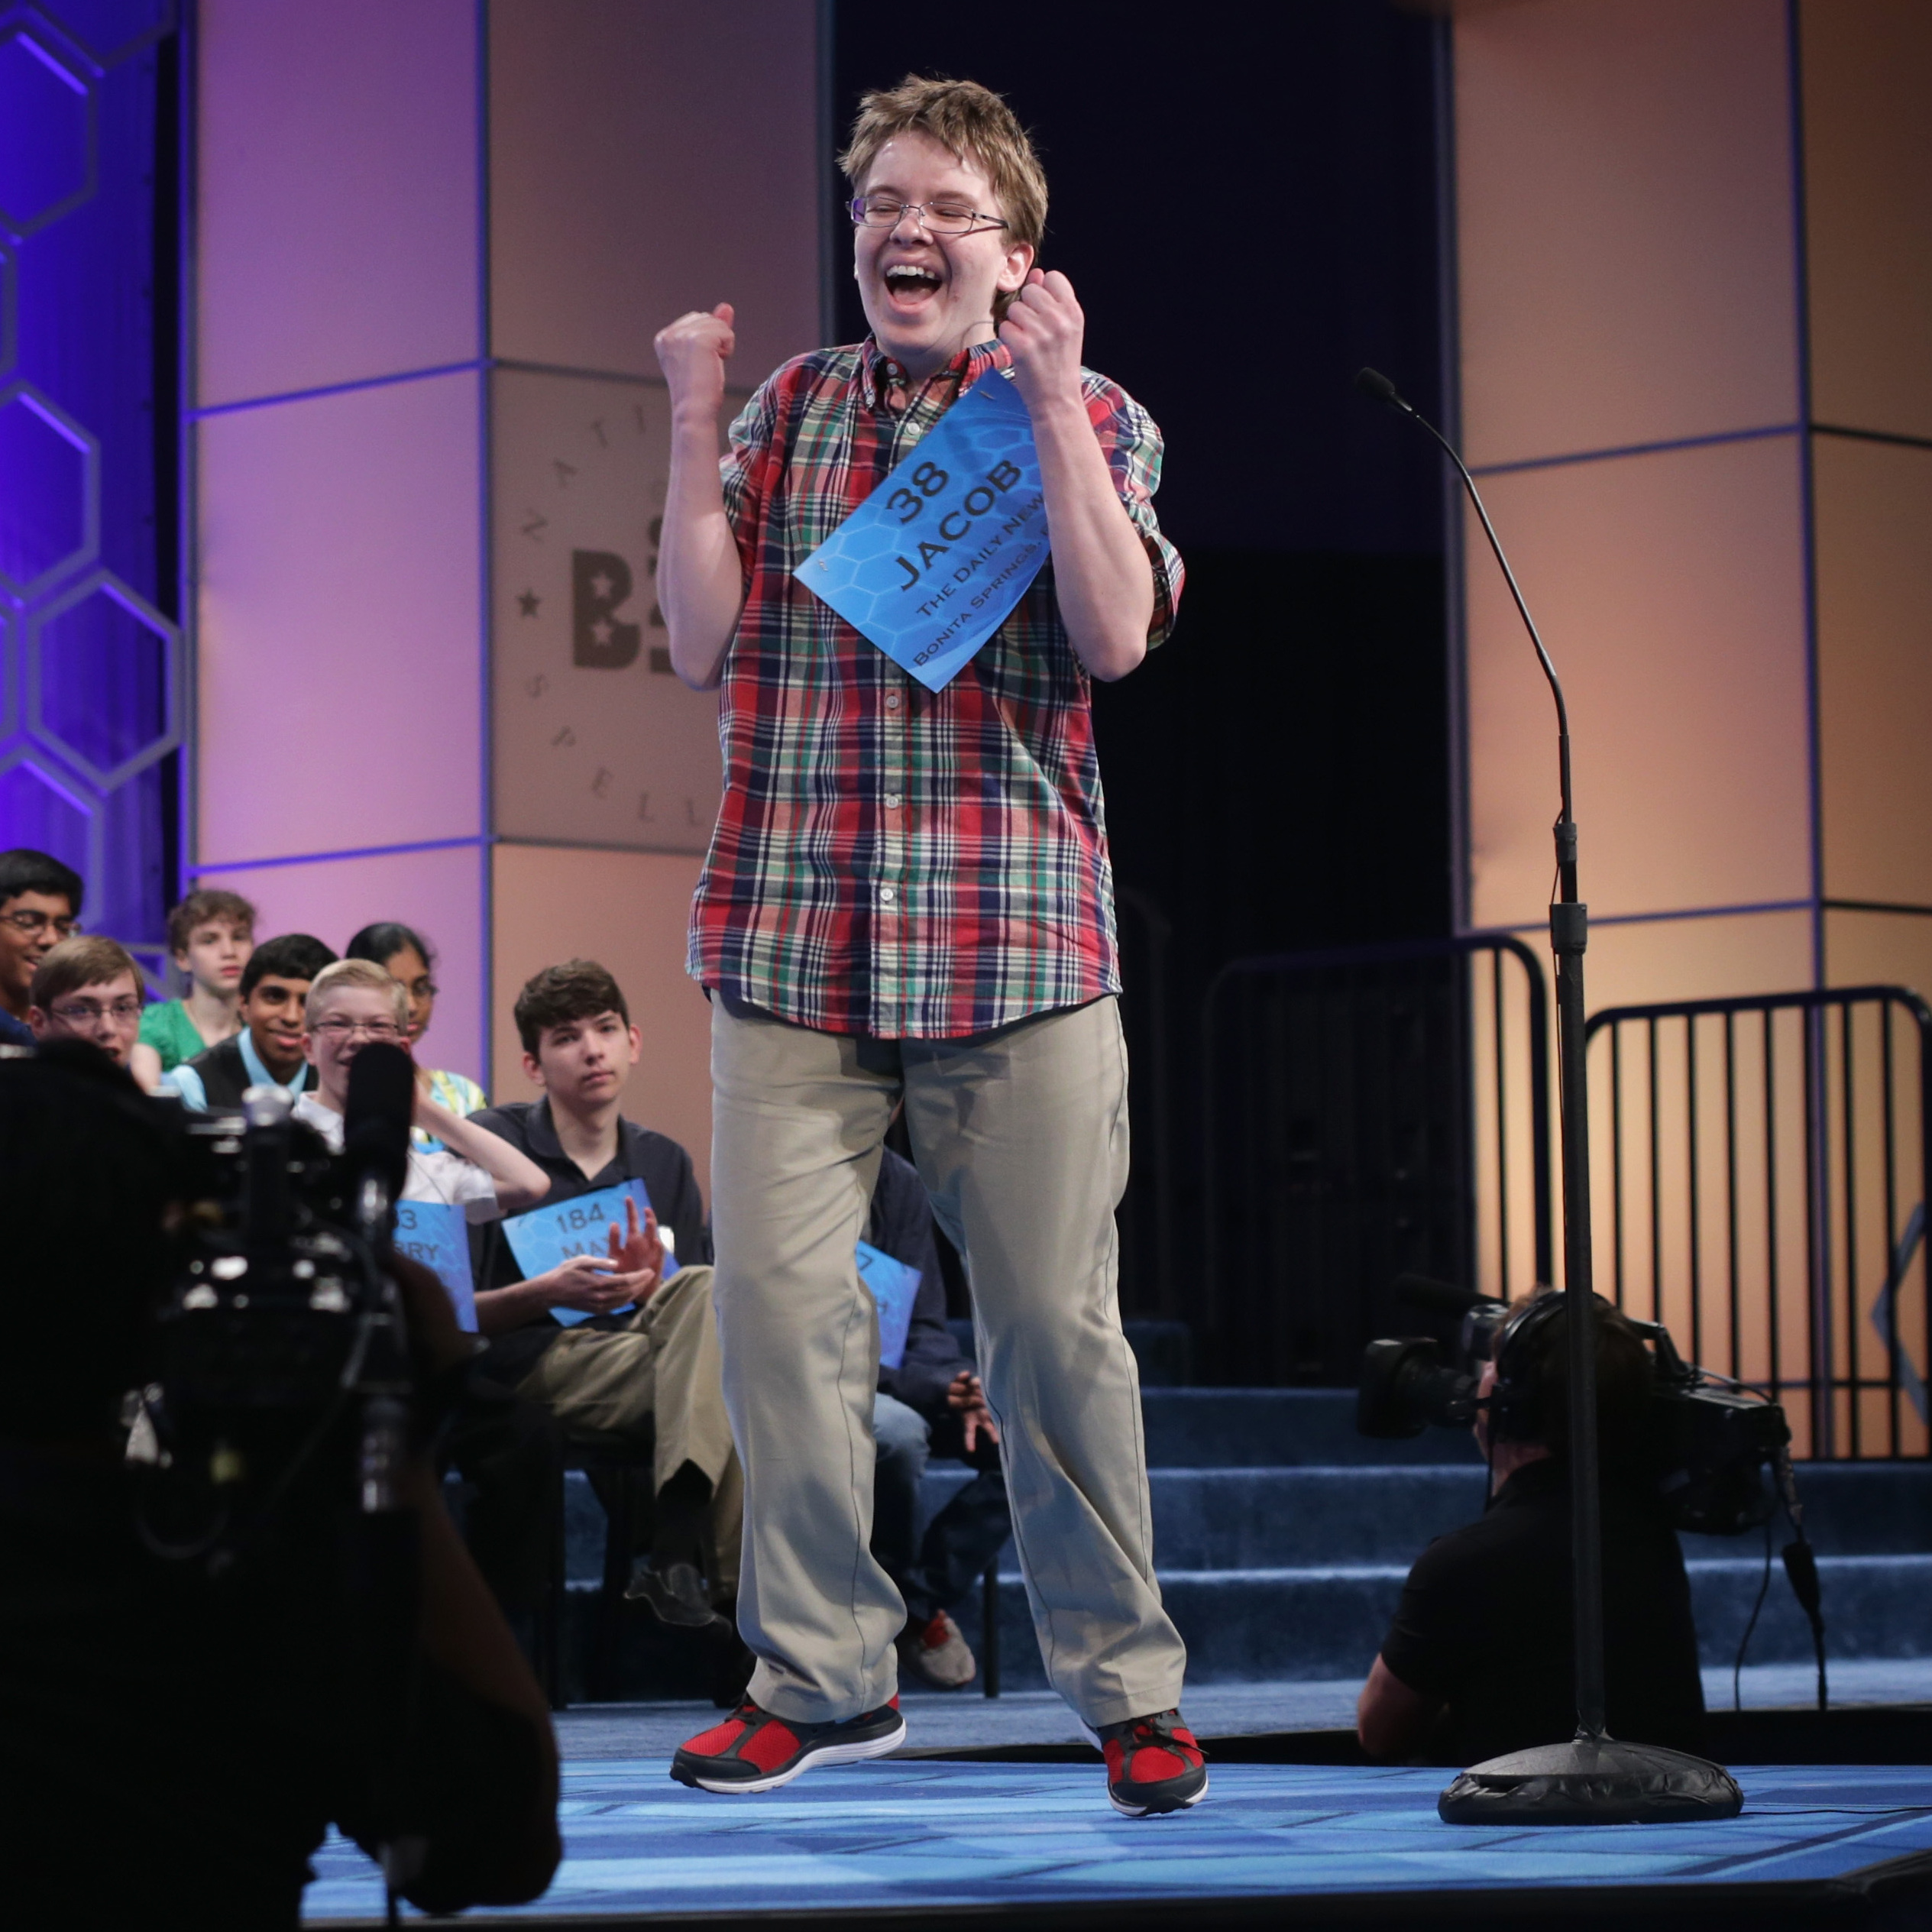 Speller Jacob Daniel Williamson of Cape Coral, Fla., reacts after he correctly spelled a word during round five of the 2014 Scripps National Spelling Bee competition Thursday. He made it to the finals -- and won fans with his enthusiasm.